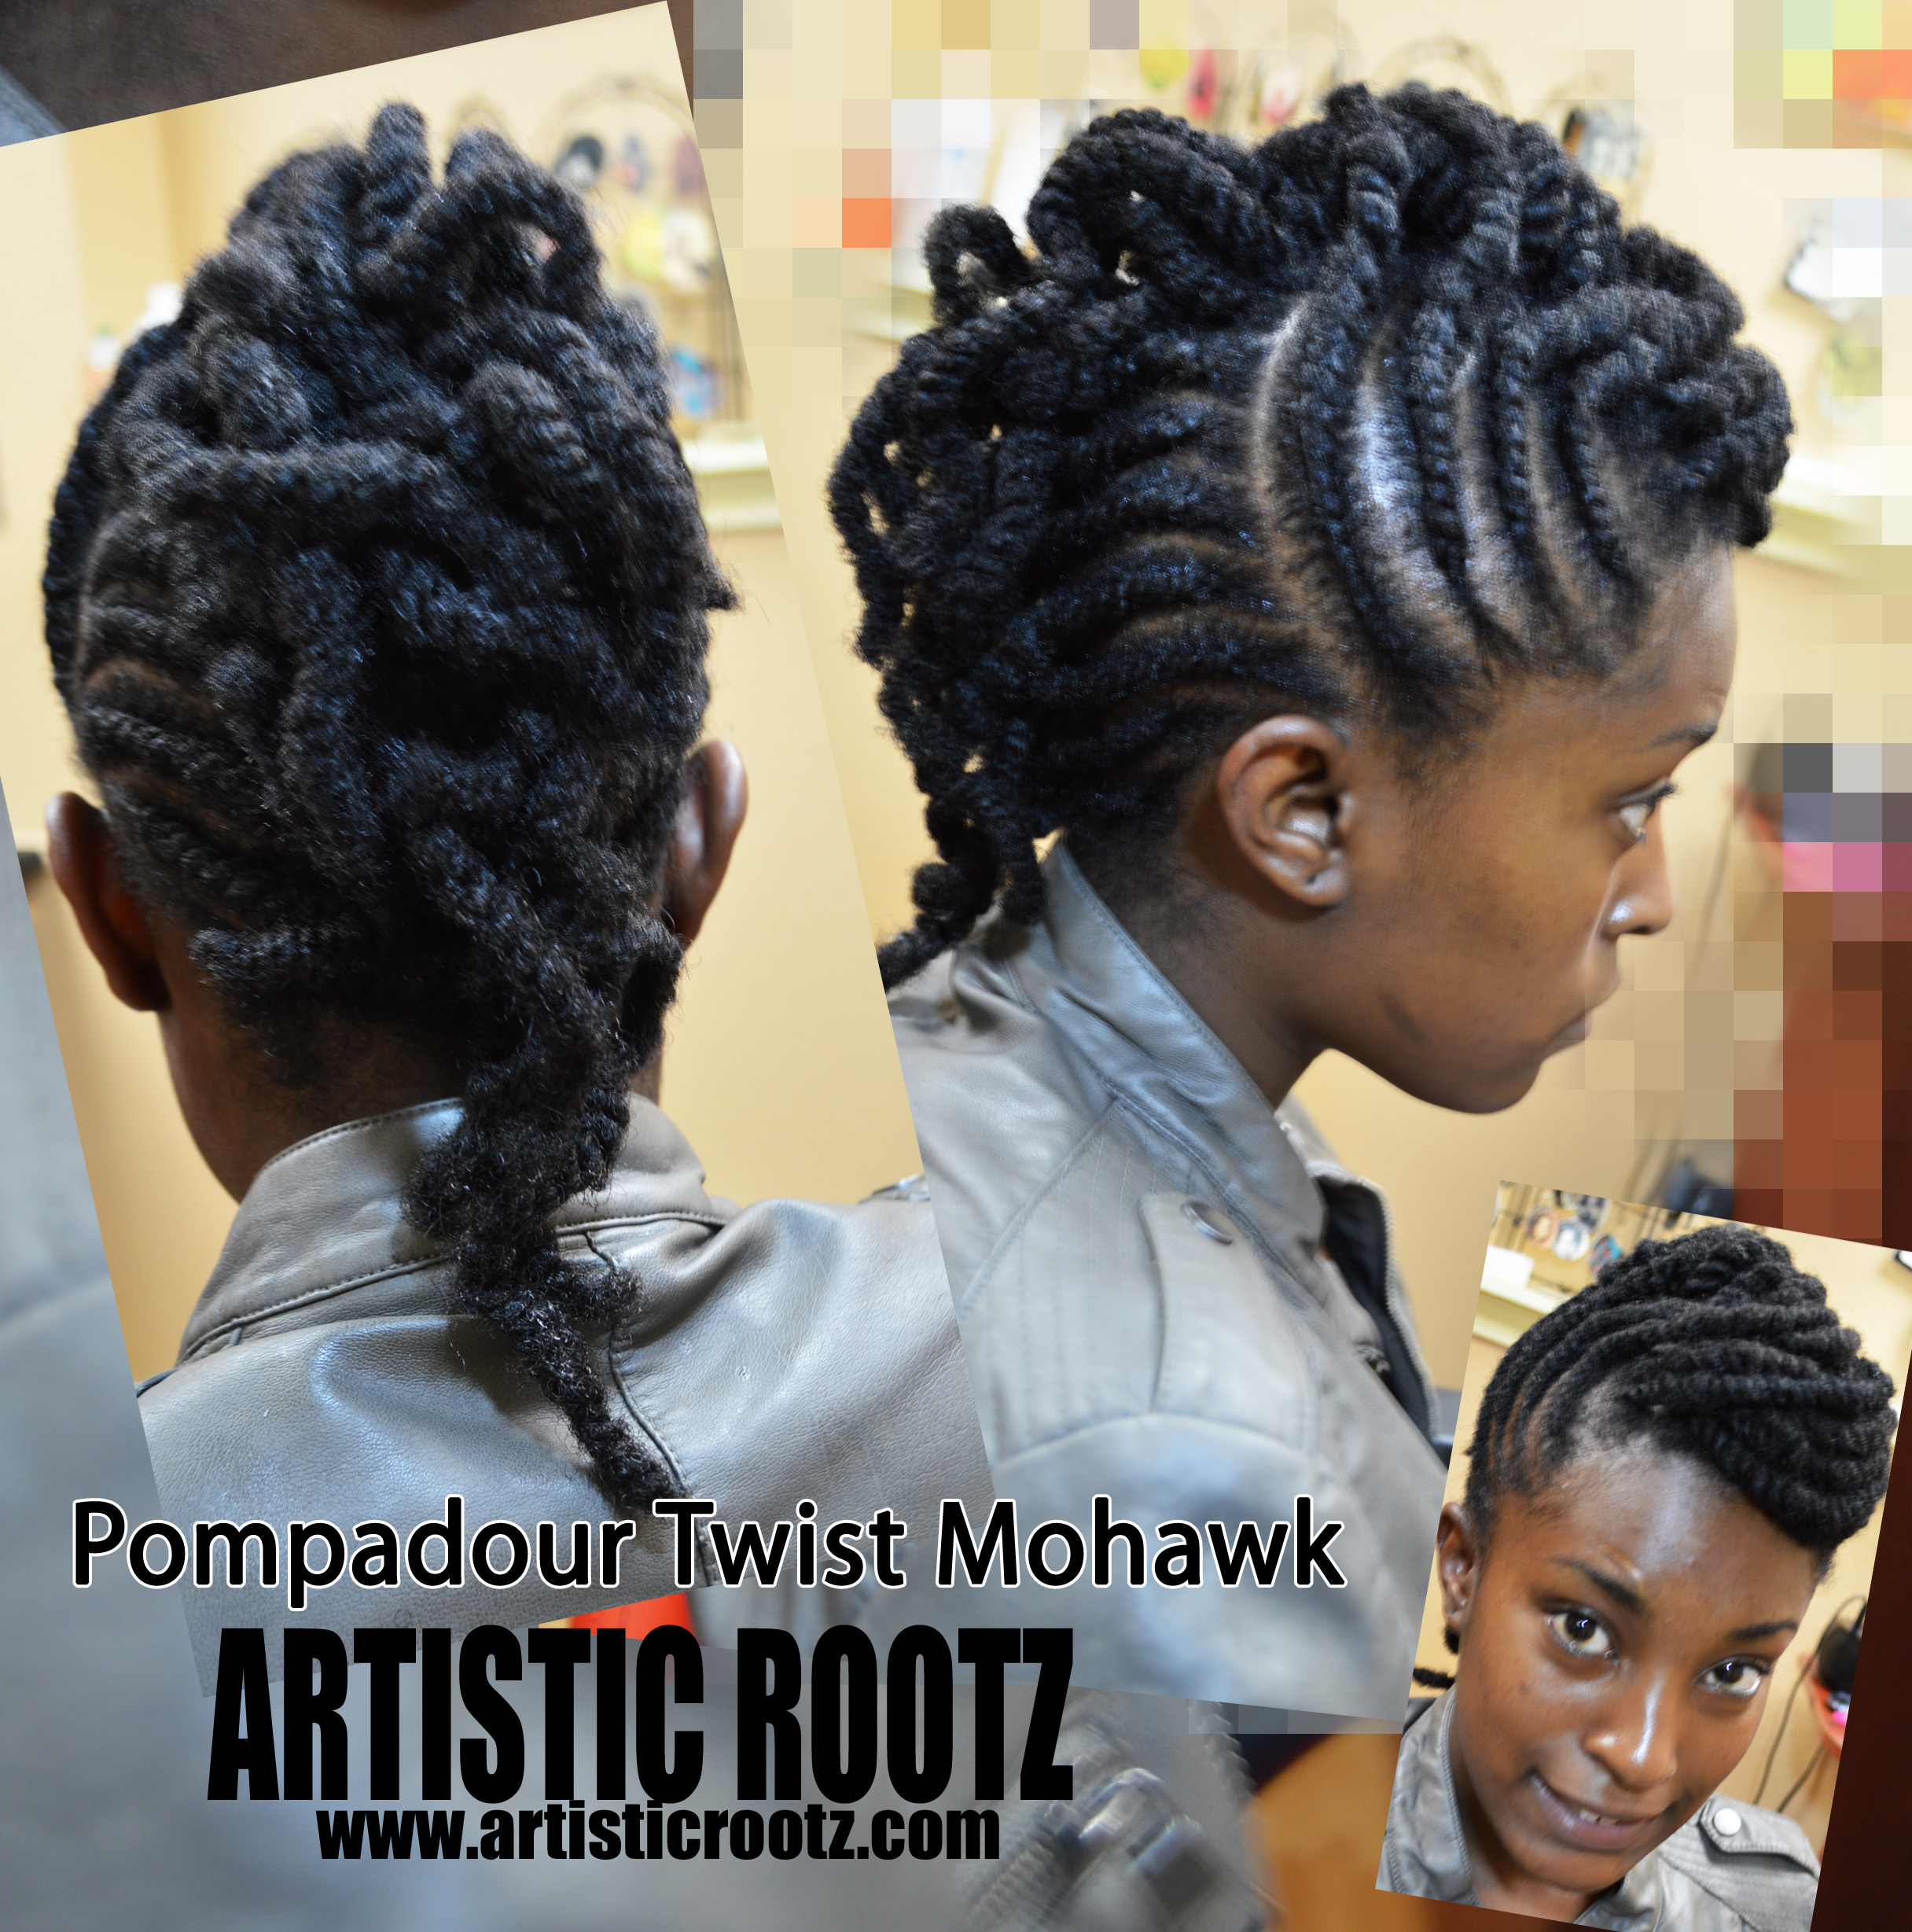 Artistic Rootz Natural Hair Care San Antonio Tx 78217